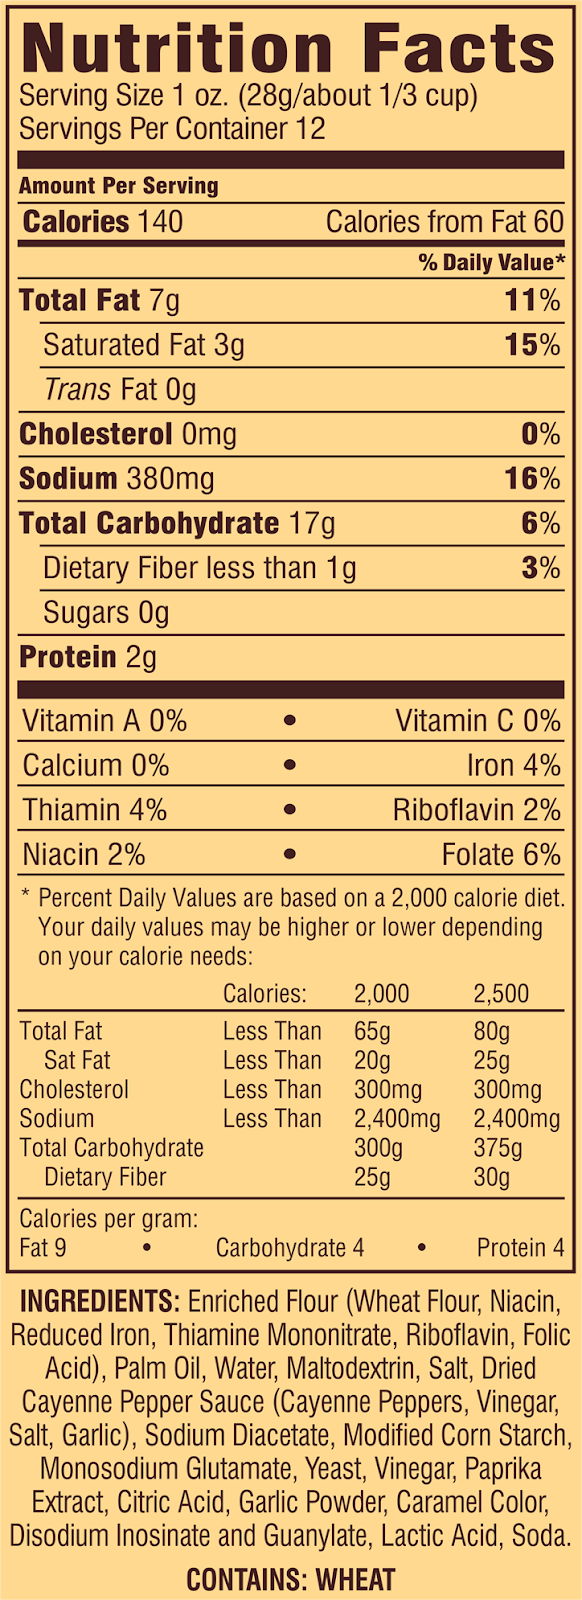 Accidentally vegan snack nutrition facts for Snyders hot buffalo wing flavored pretzel pieces.